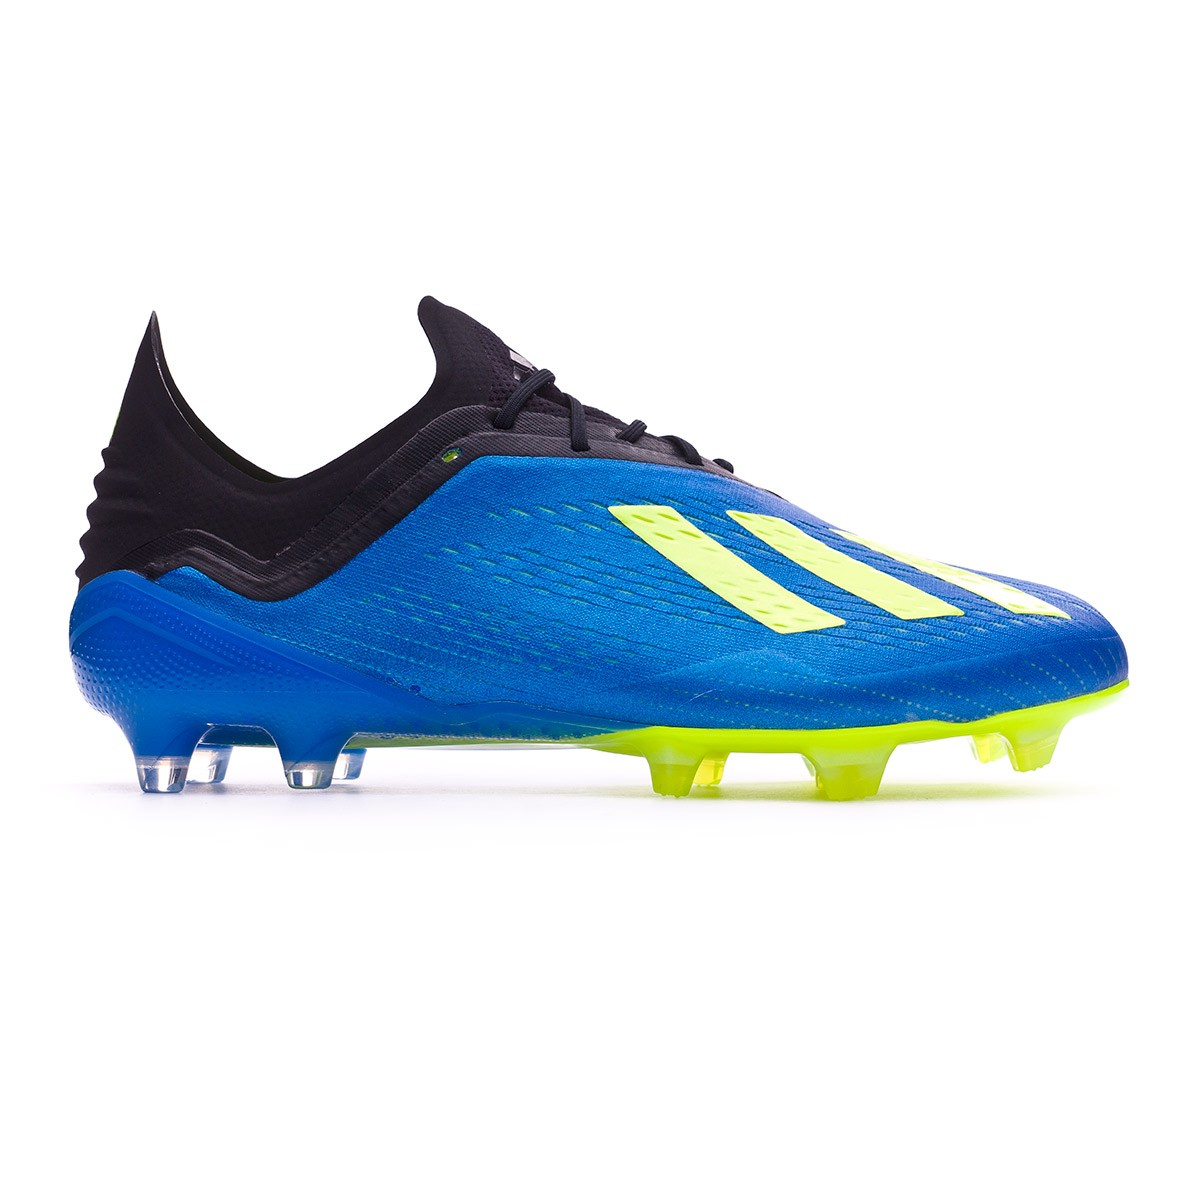 best website aa062 a2e90 Boot adidas X 18.1 FG Foot blue-Solar yellow-Black - Soloporteros es ahora  F  tbol Emotion